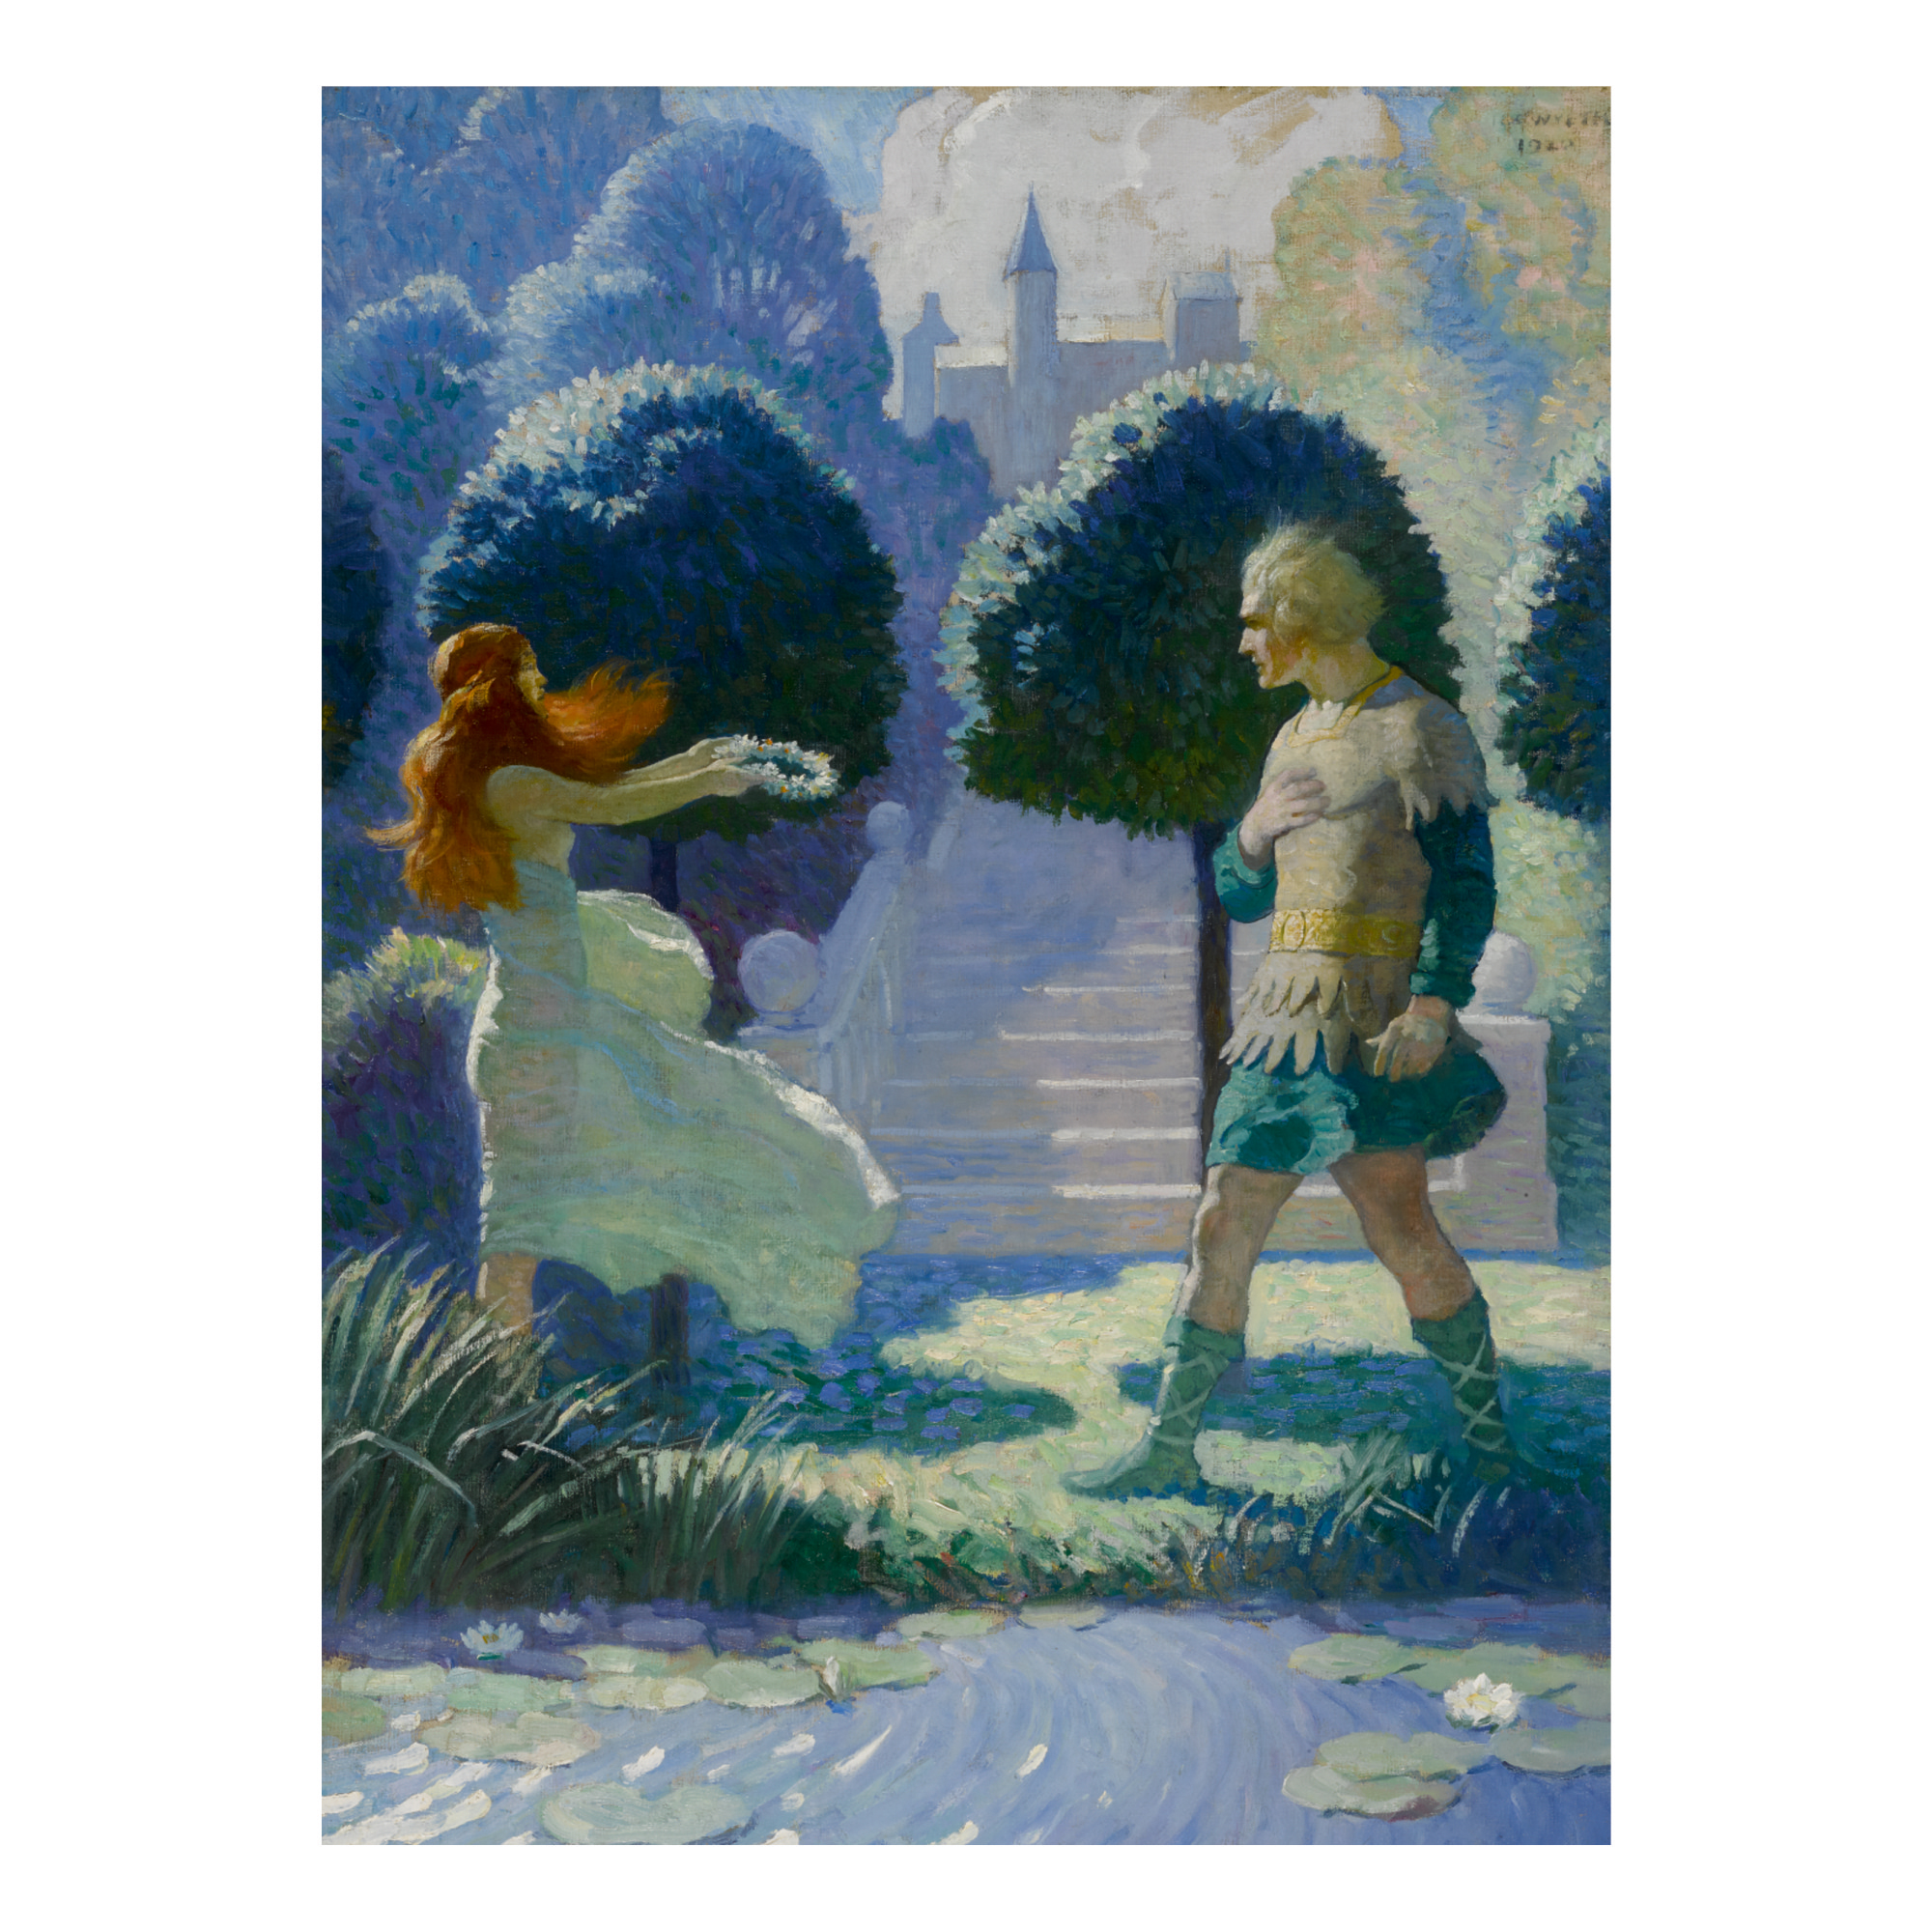 N. C. WYETH   OGIER AND MORGANA (OGIER DISMOUNTED AND TOOK SOME STEPS ALONG THE STREAM, BUT WAS SOON STOPPED BY MEETING A YOUNG BEAUTY, SUCH AS THEY PAINT THE GRACES.)